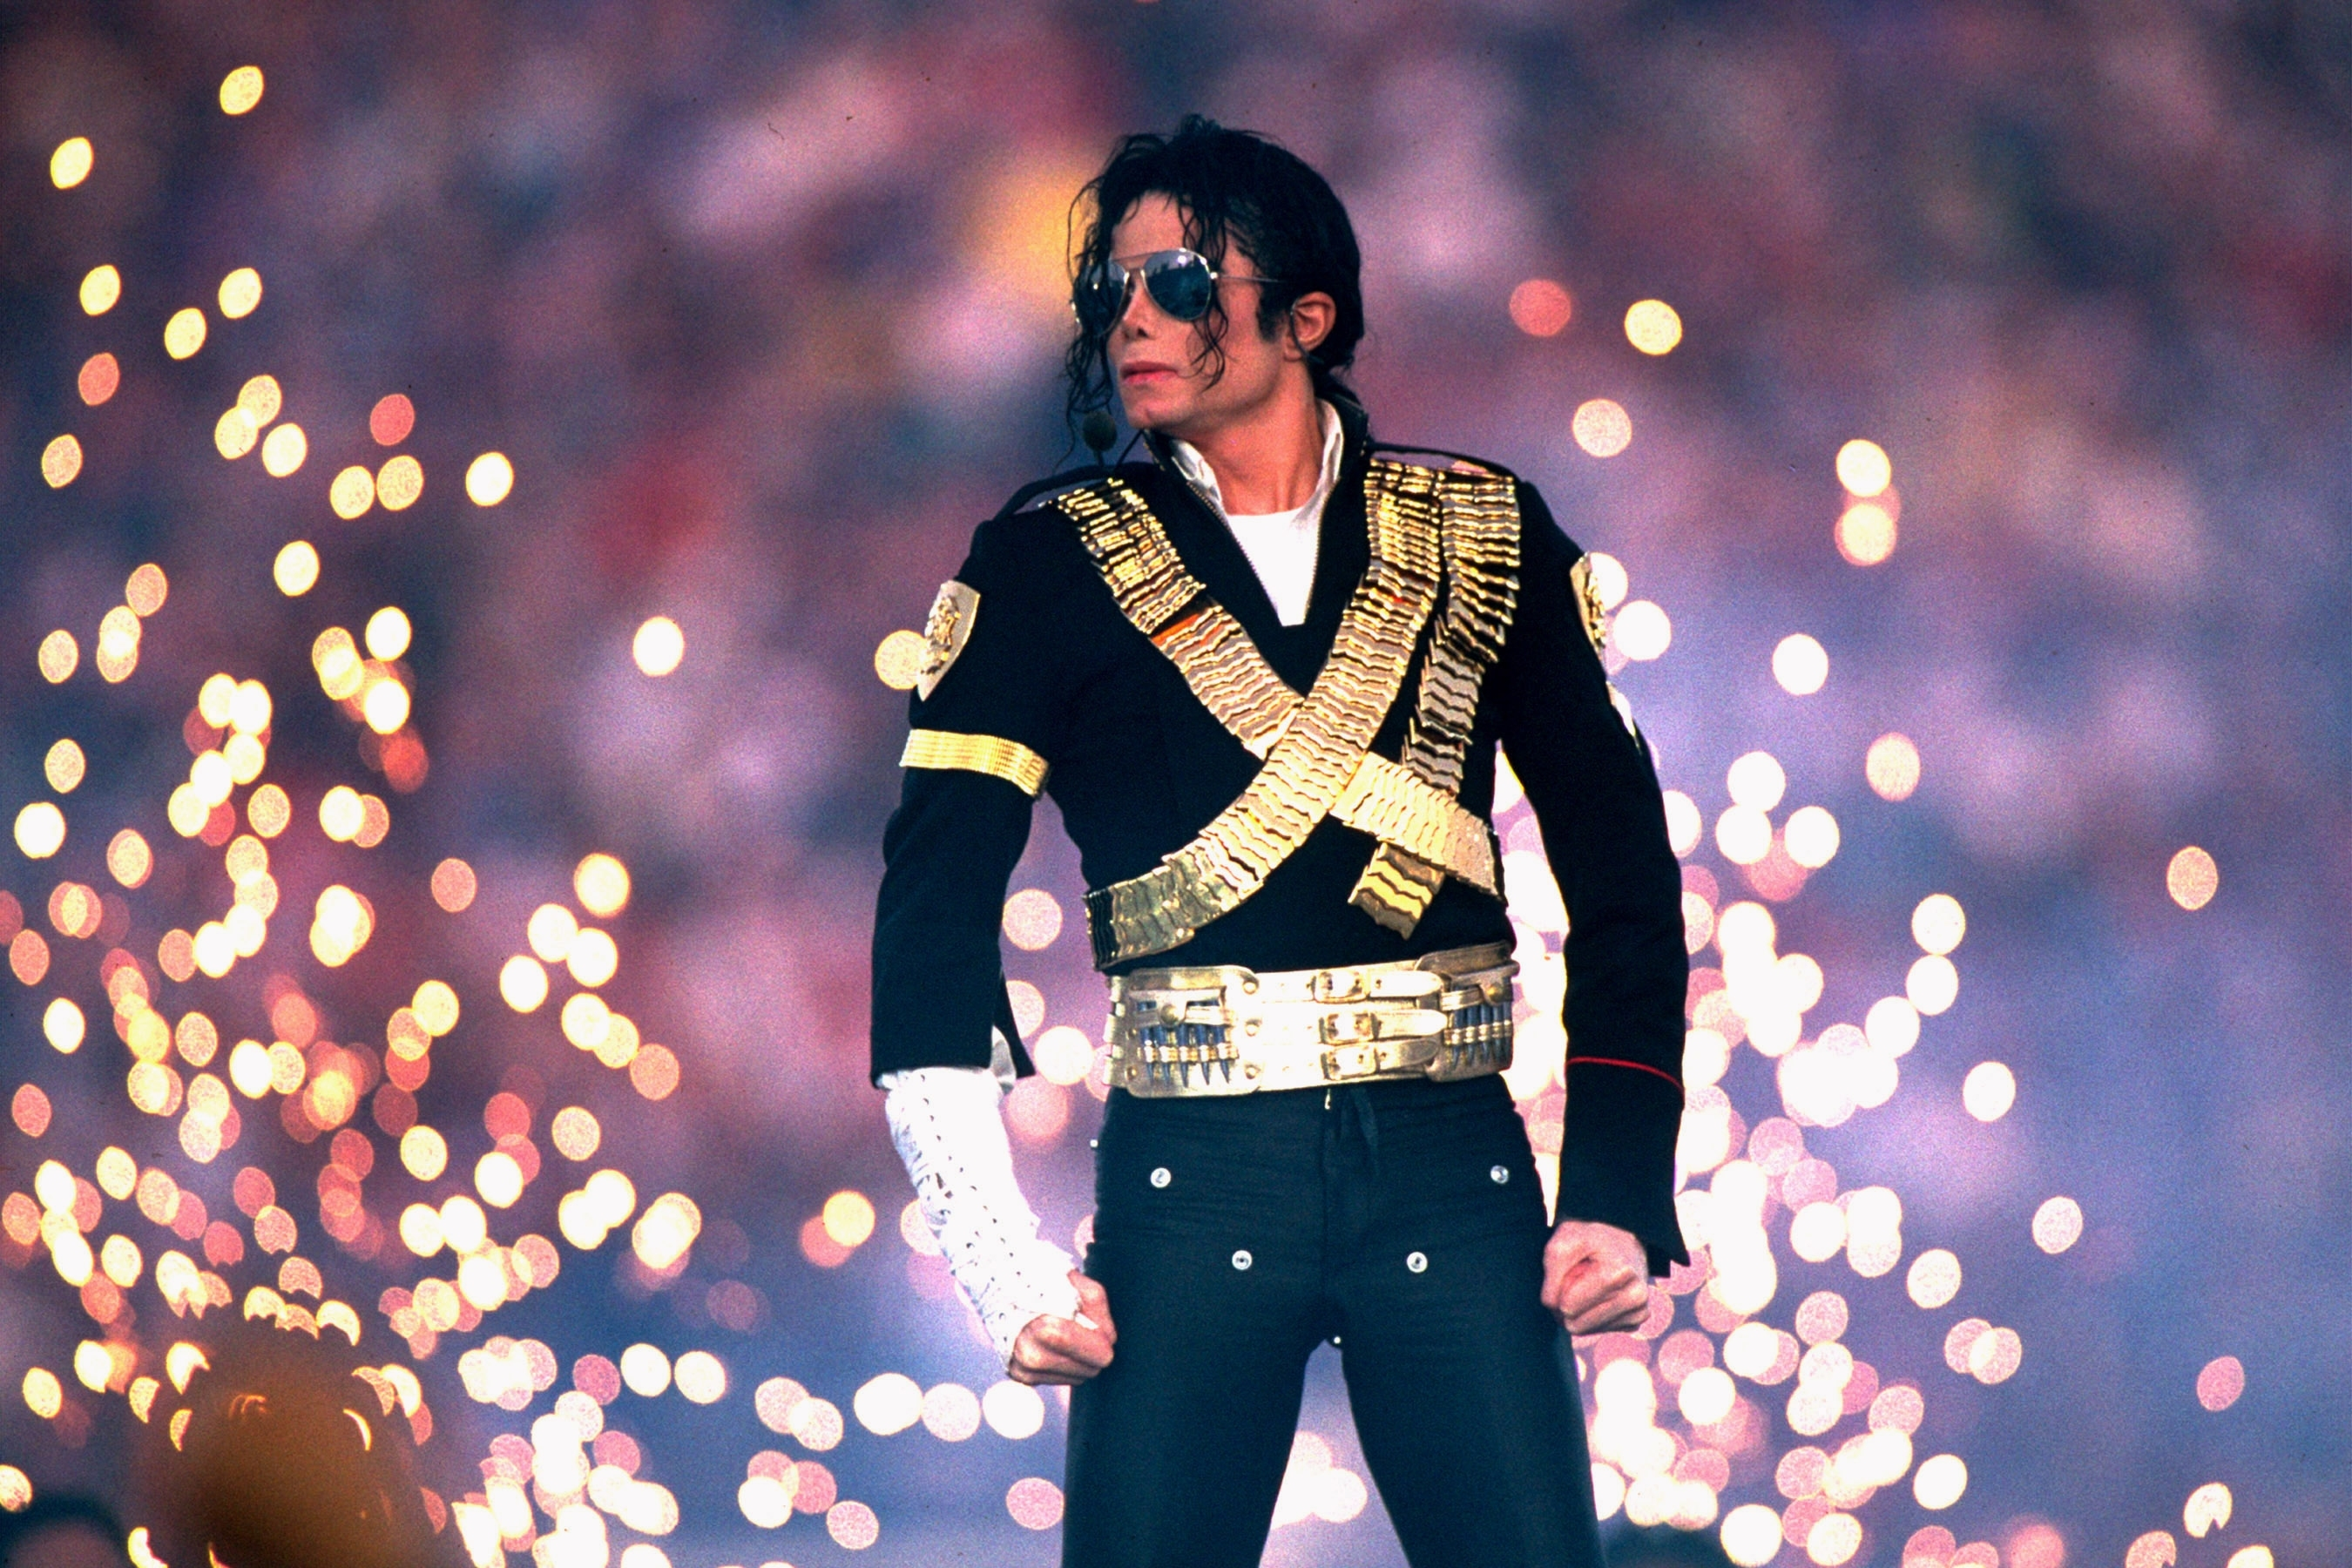 A Friendly Reminder Of That Time Michael Made Super Bowl intended for Michael Jackson Super Bowl